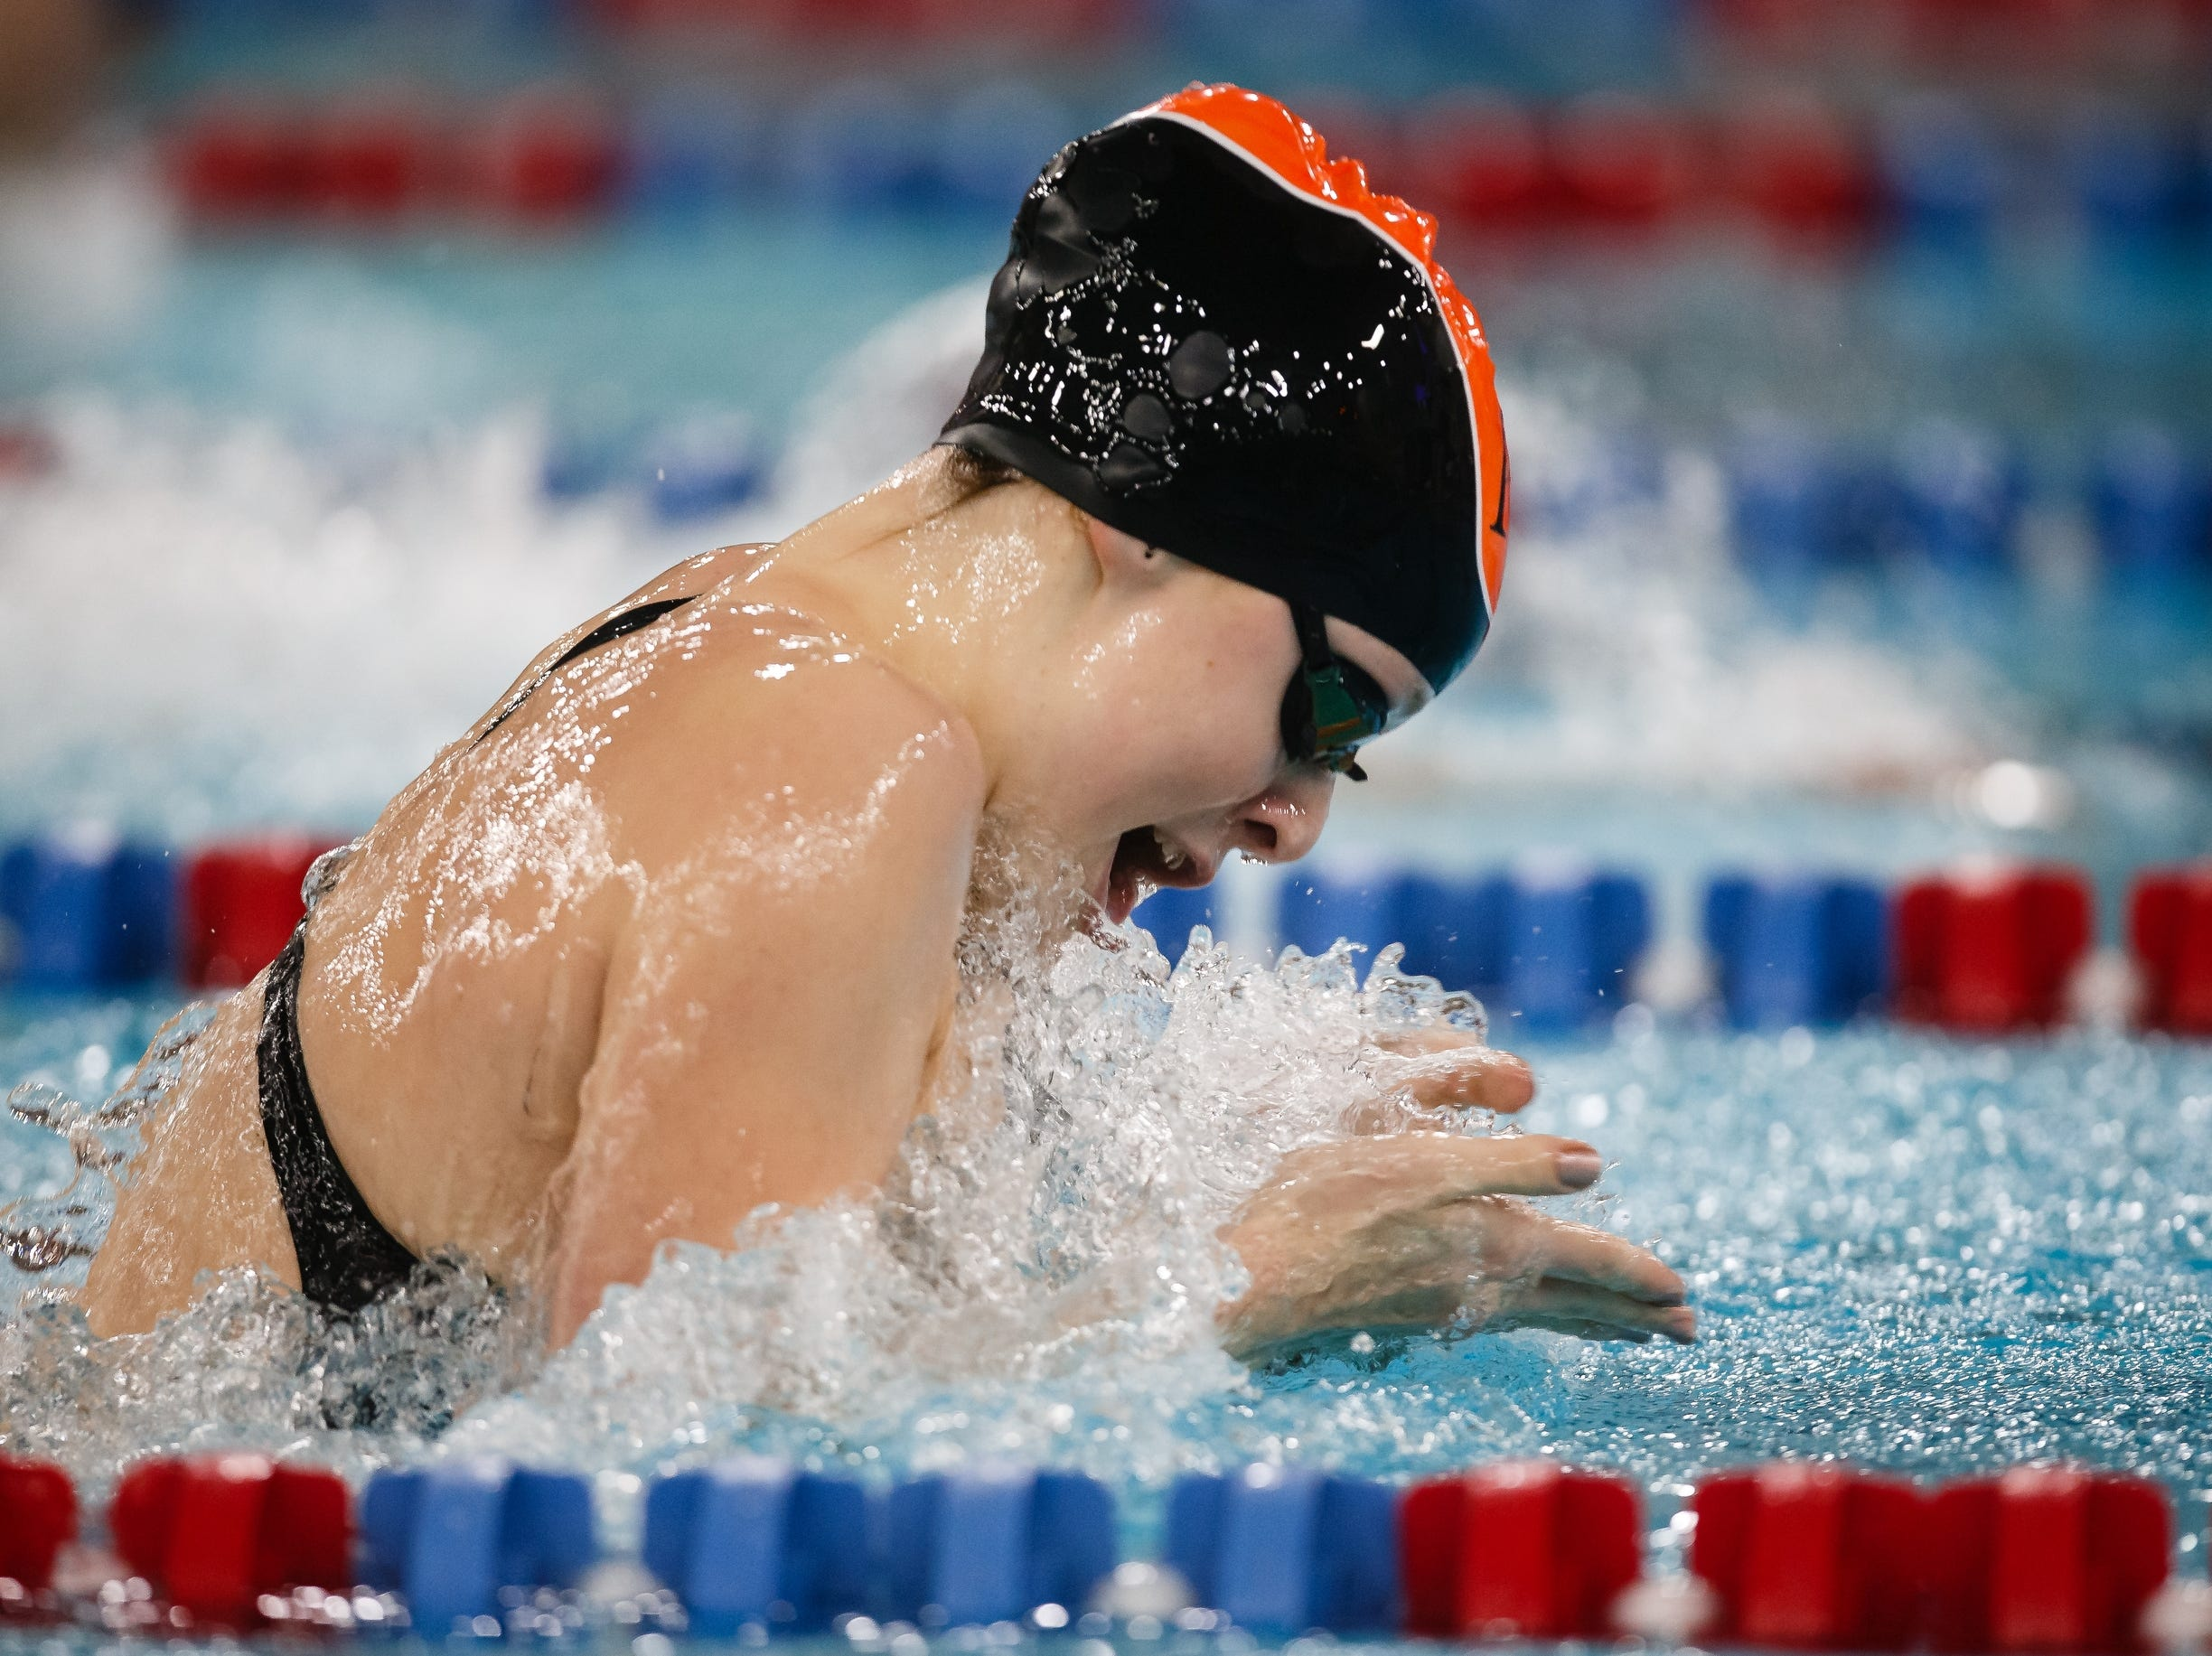 Ames' Molly Winer competes in the 100 yard breaststroke at the Iowa girls state swimming meet on Saturday, Nov. 3, 2018, in Marshalltown.